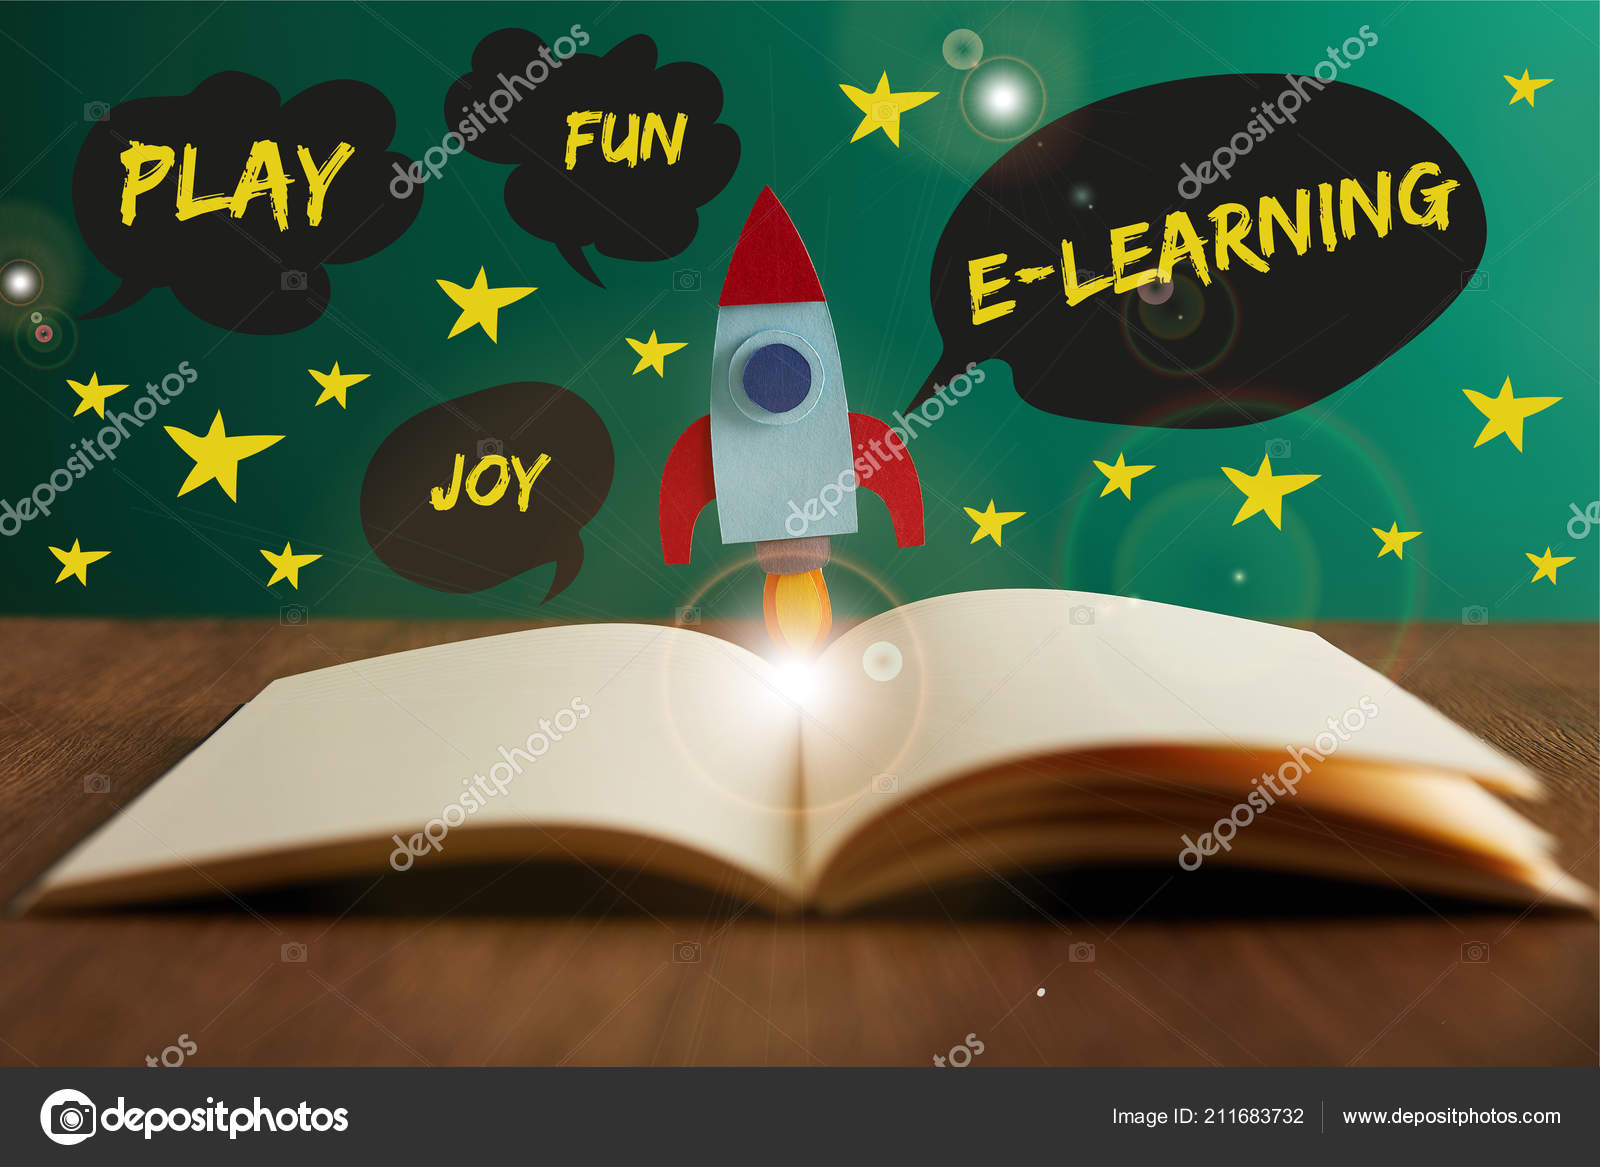 open book colorful rocket wooden table play joy fun learning